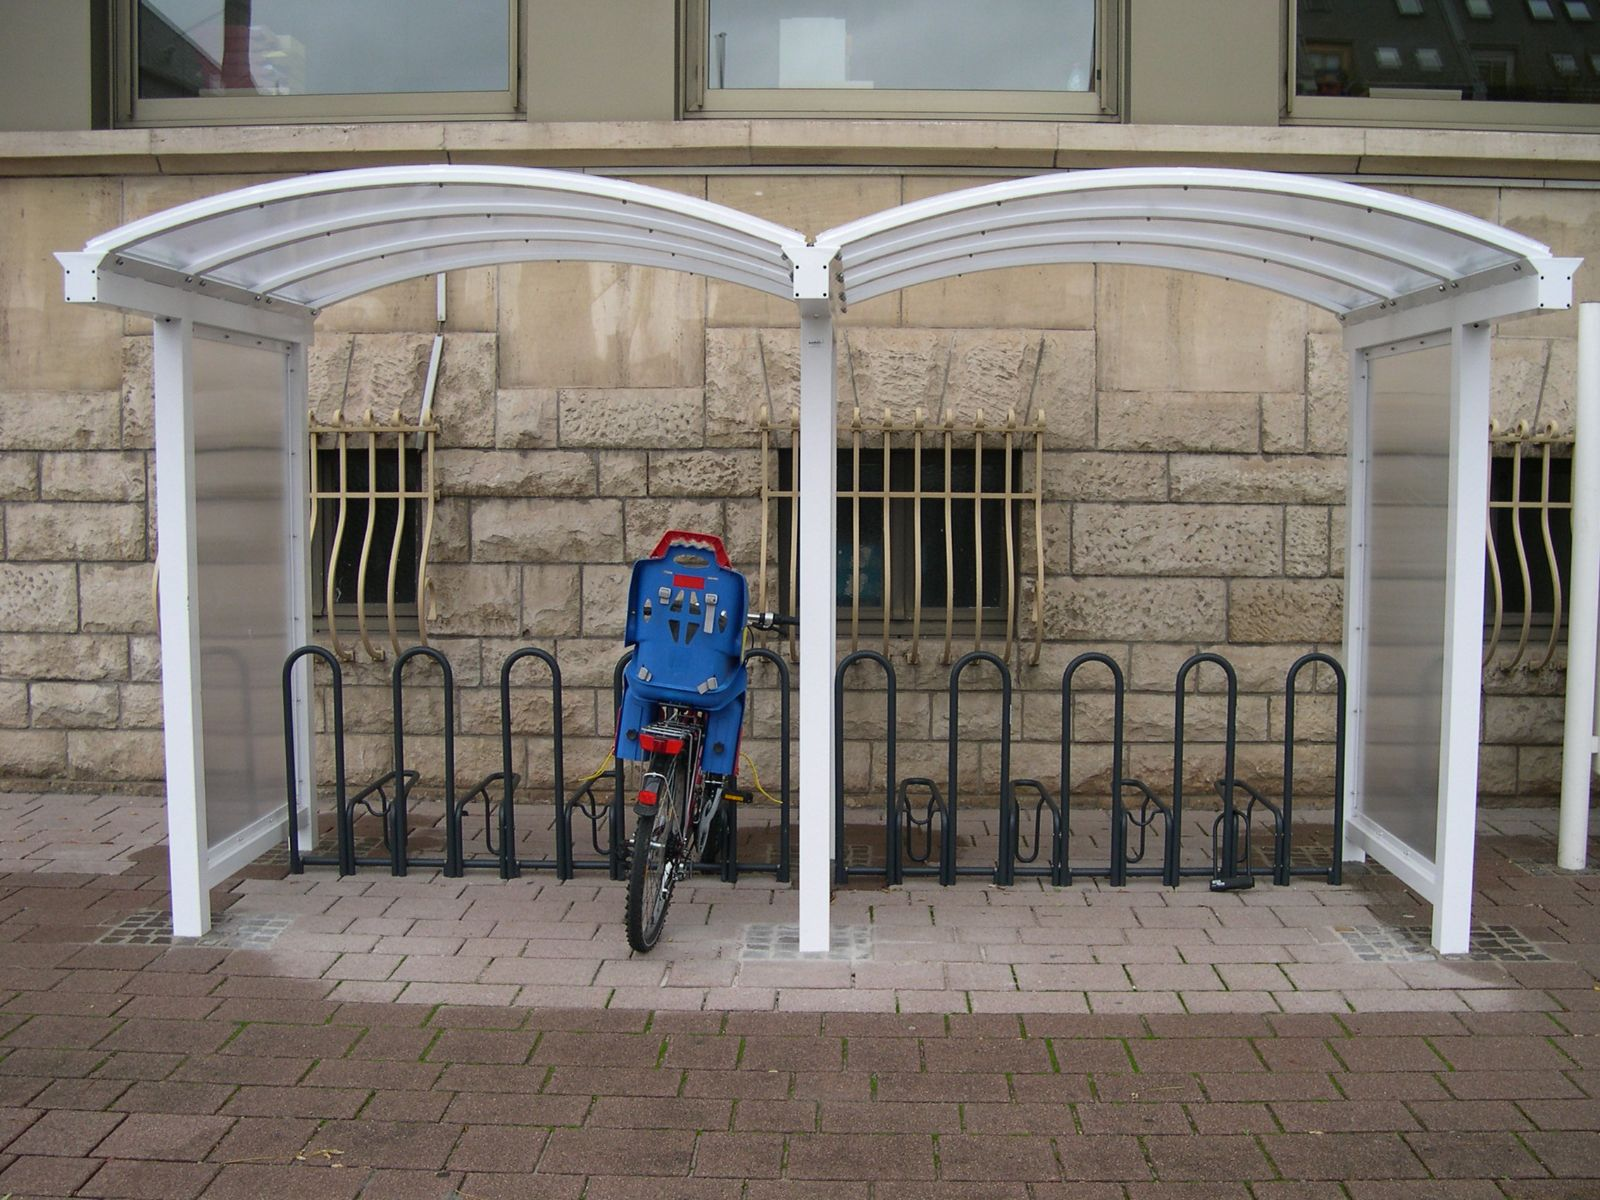 euroform w - urban furniture - bike racks - shelters - shades - Galleria